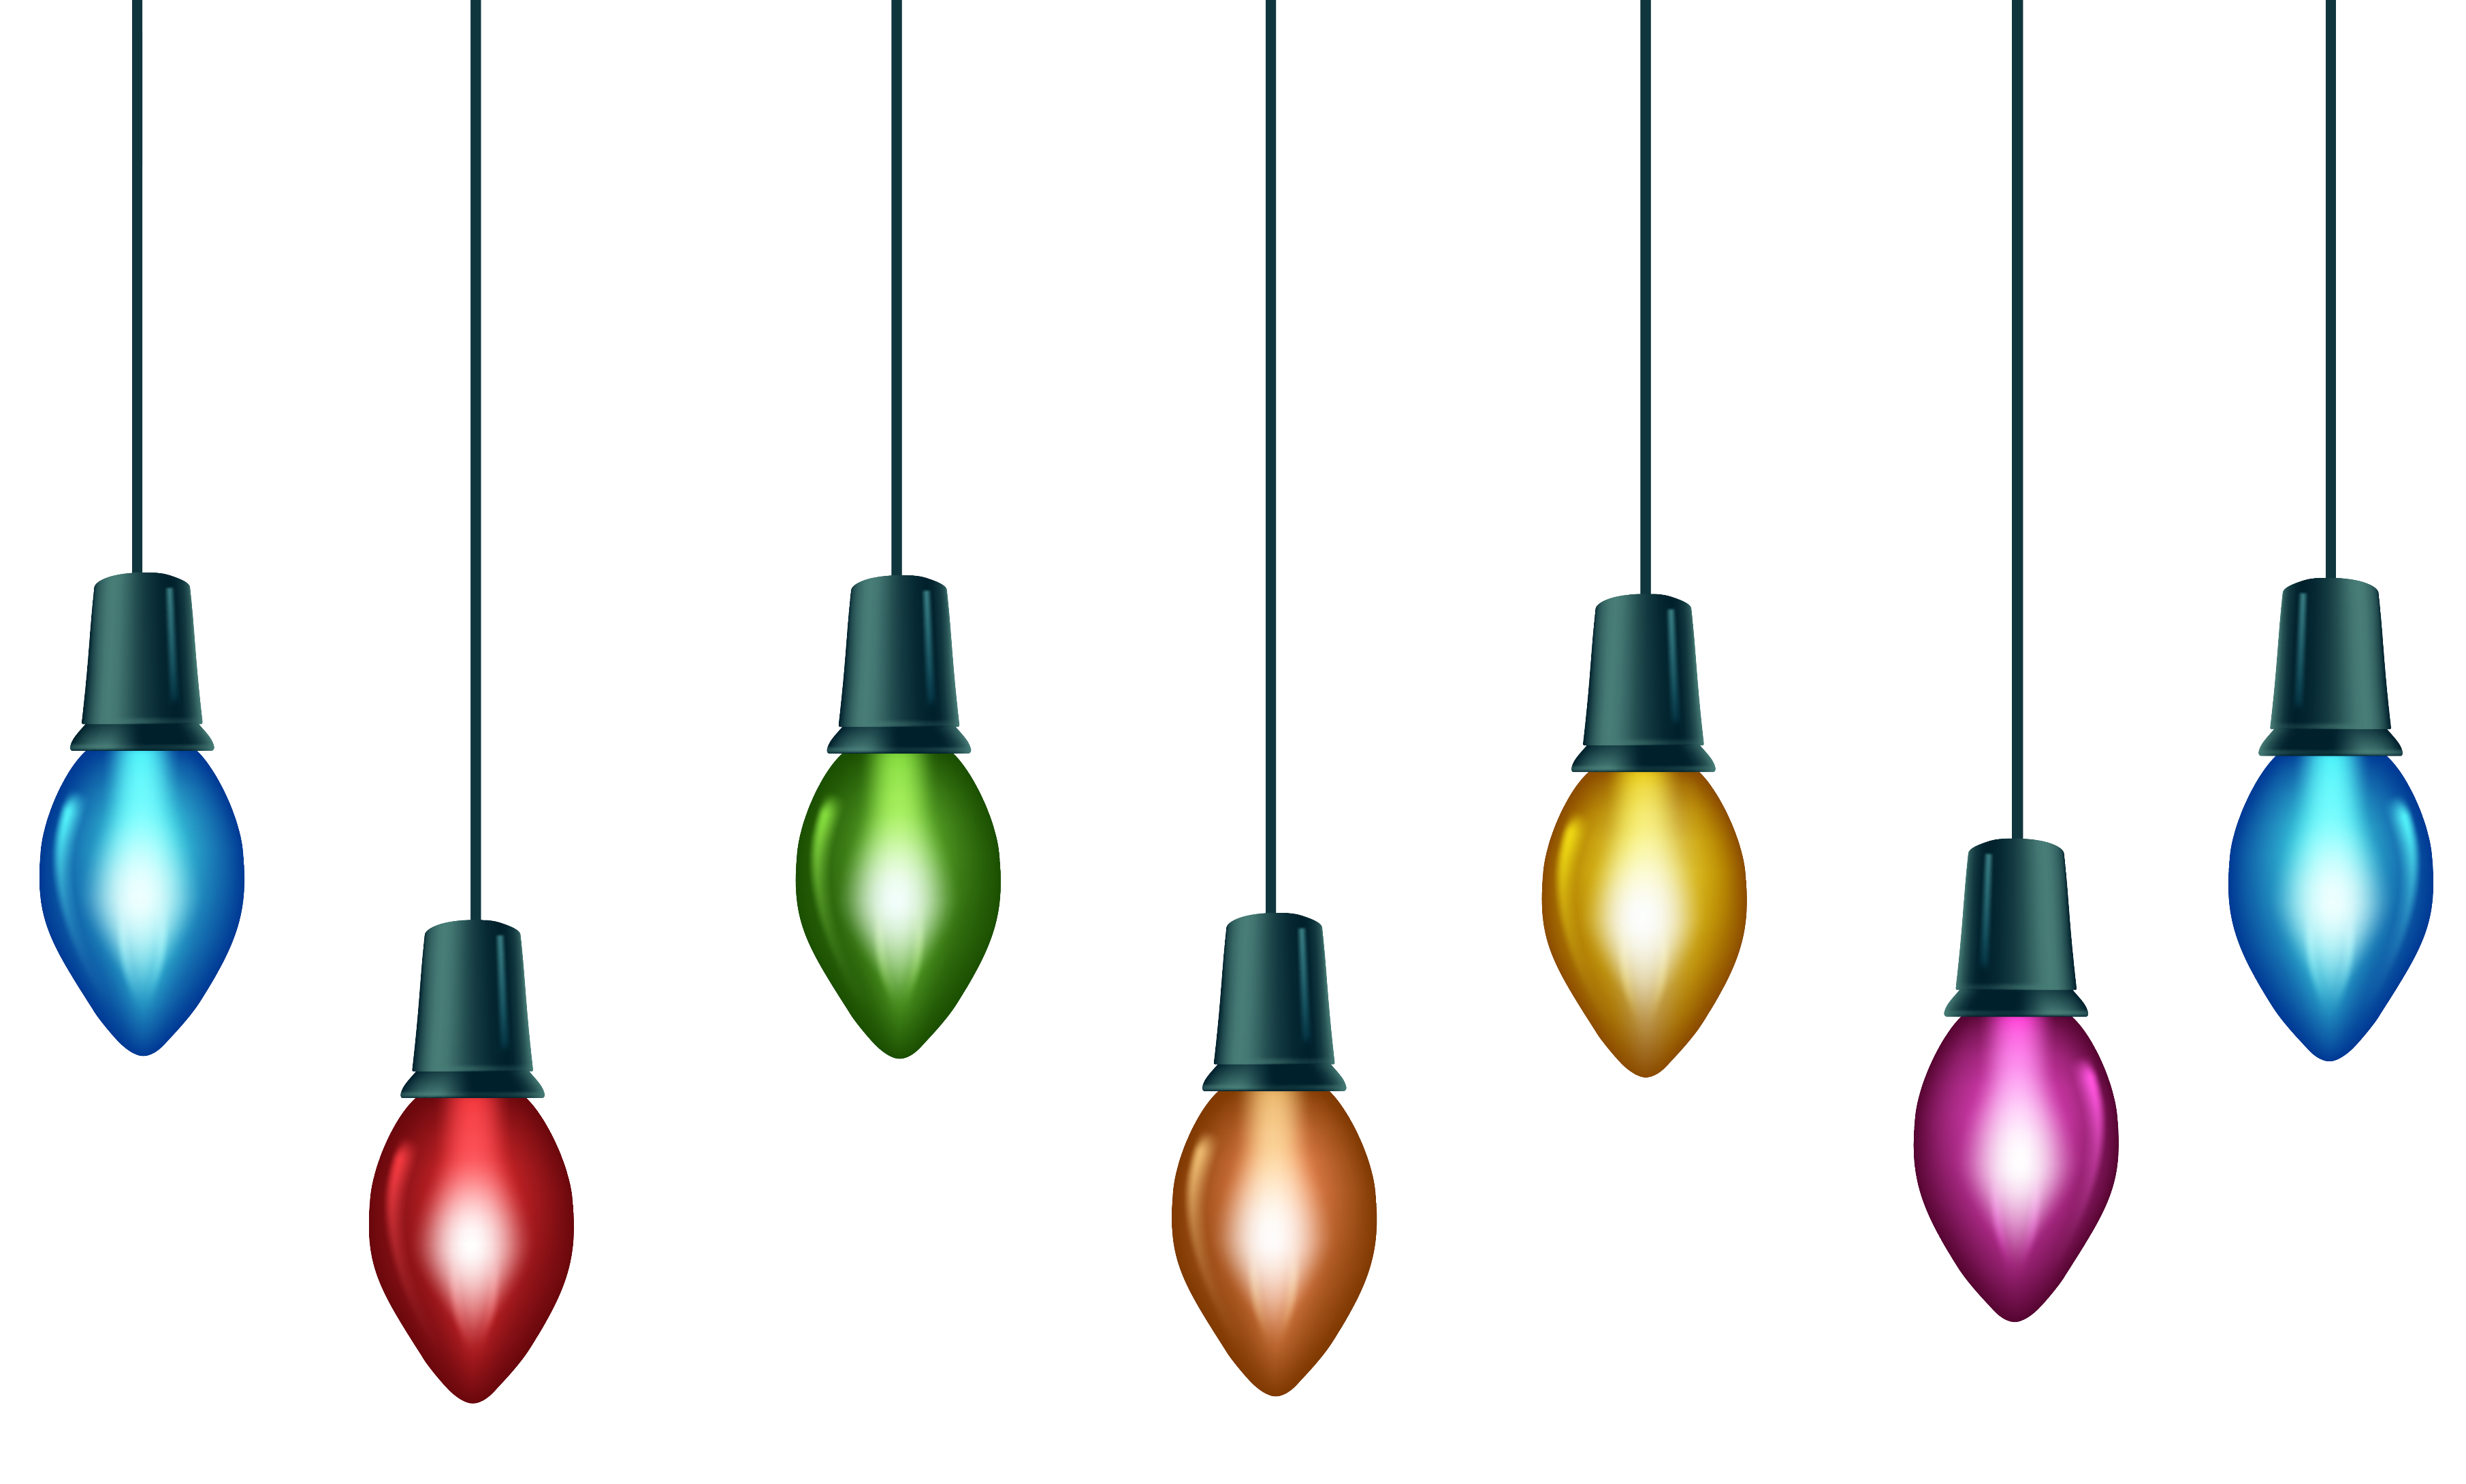 Animated Christmas Lights Clipart - ClipArt Best